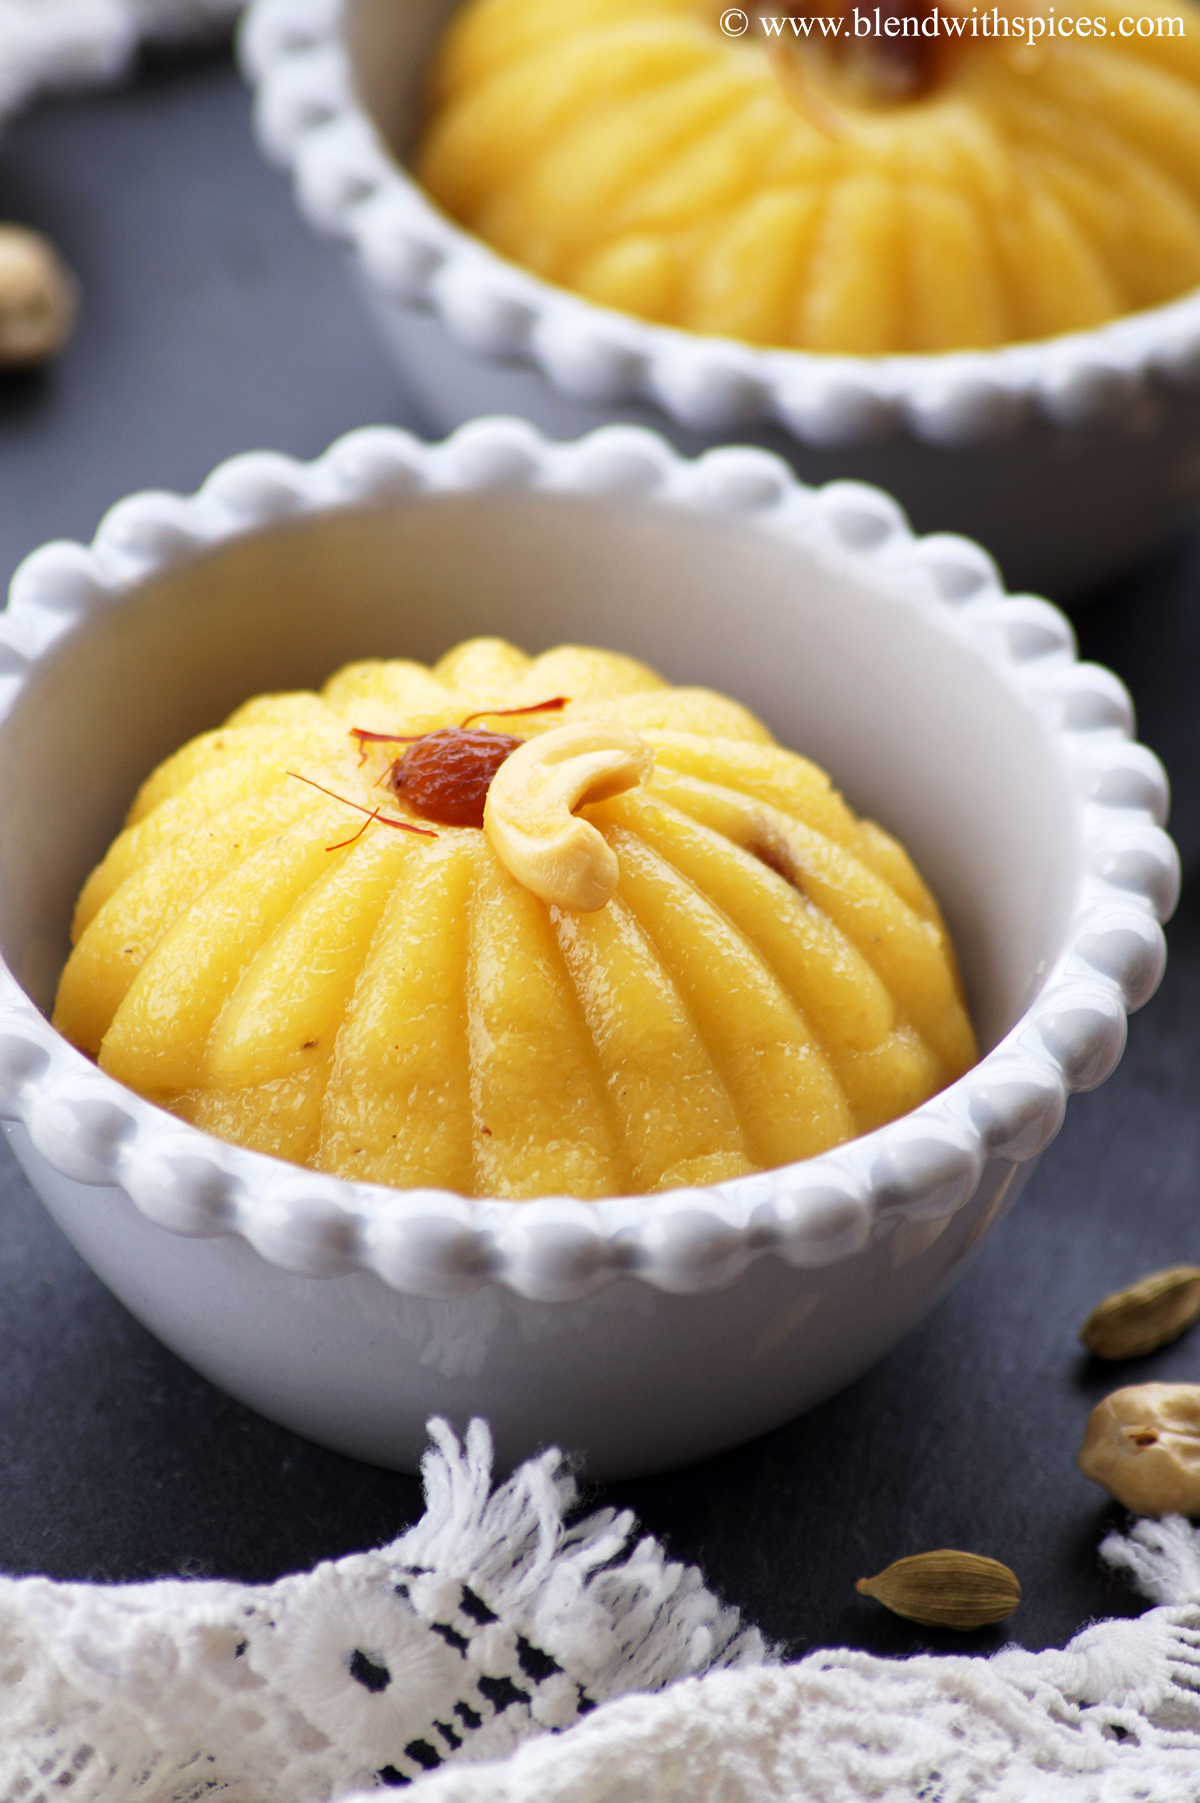 Mango sooji ka halwa served in a grey color bowl topped with fried cashew, raisin and saffron.